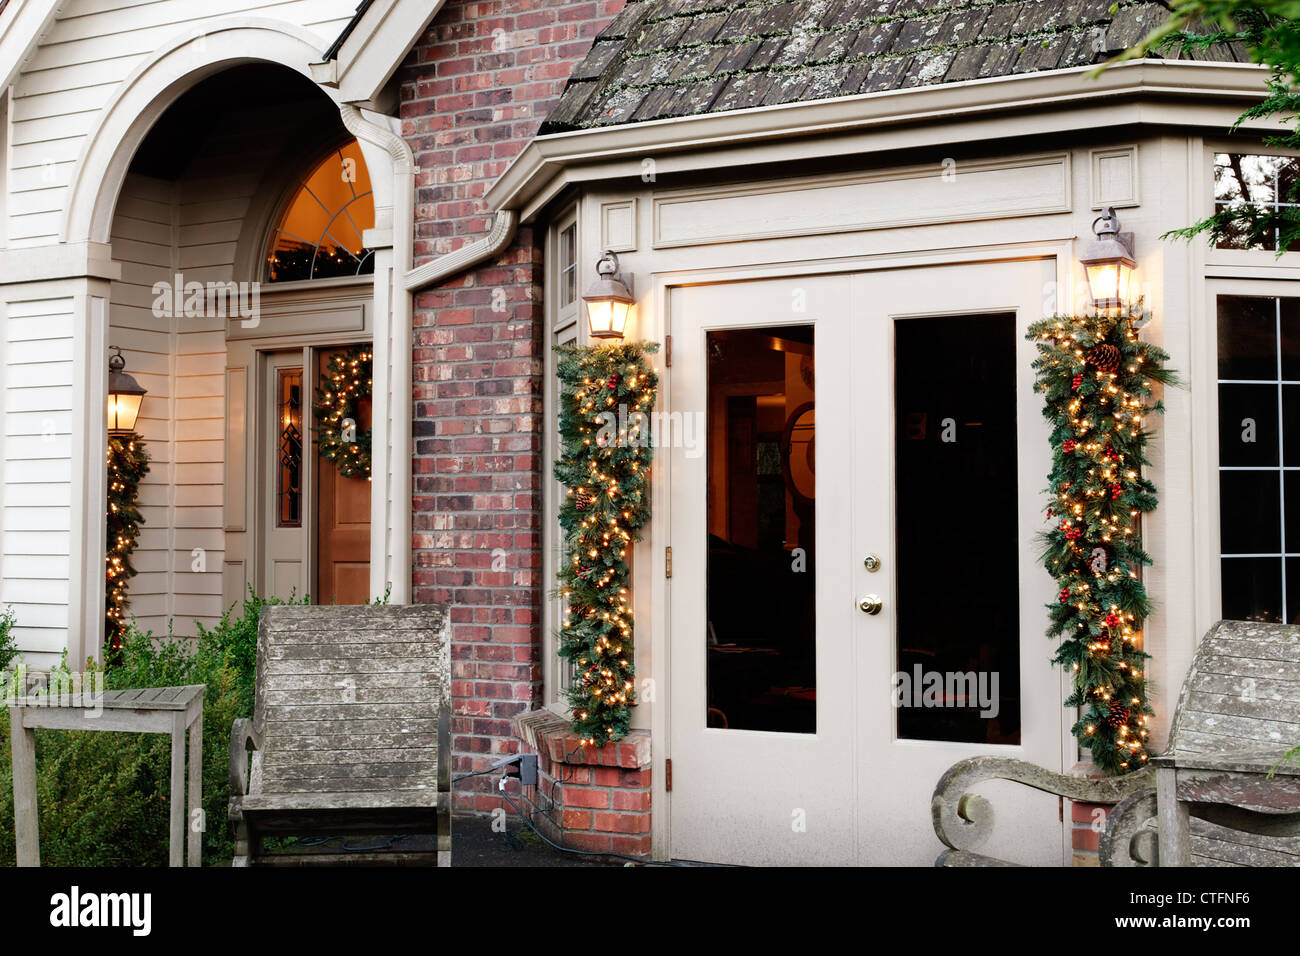 Outdoor Christmas Decorations On French Doors Porch Stock Photo